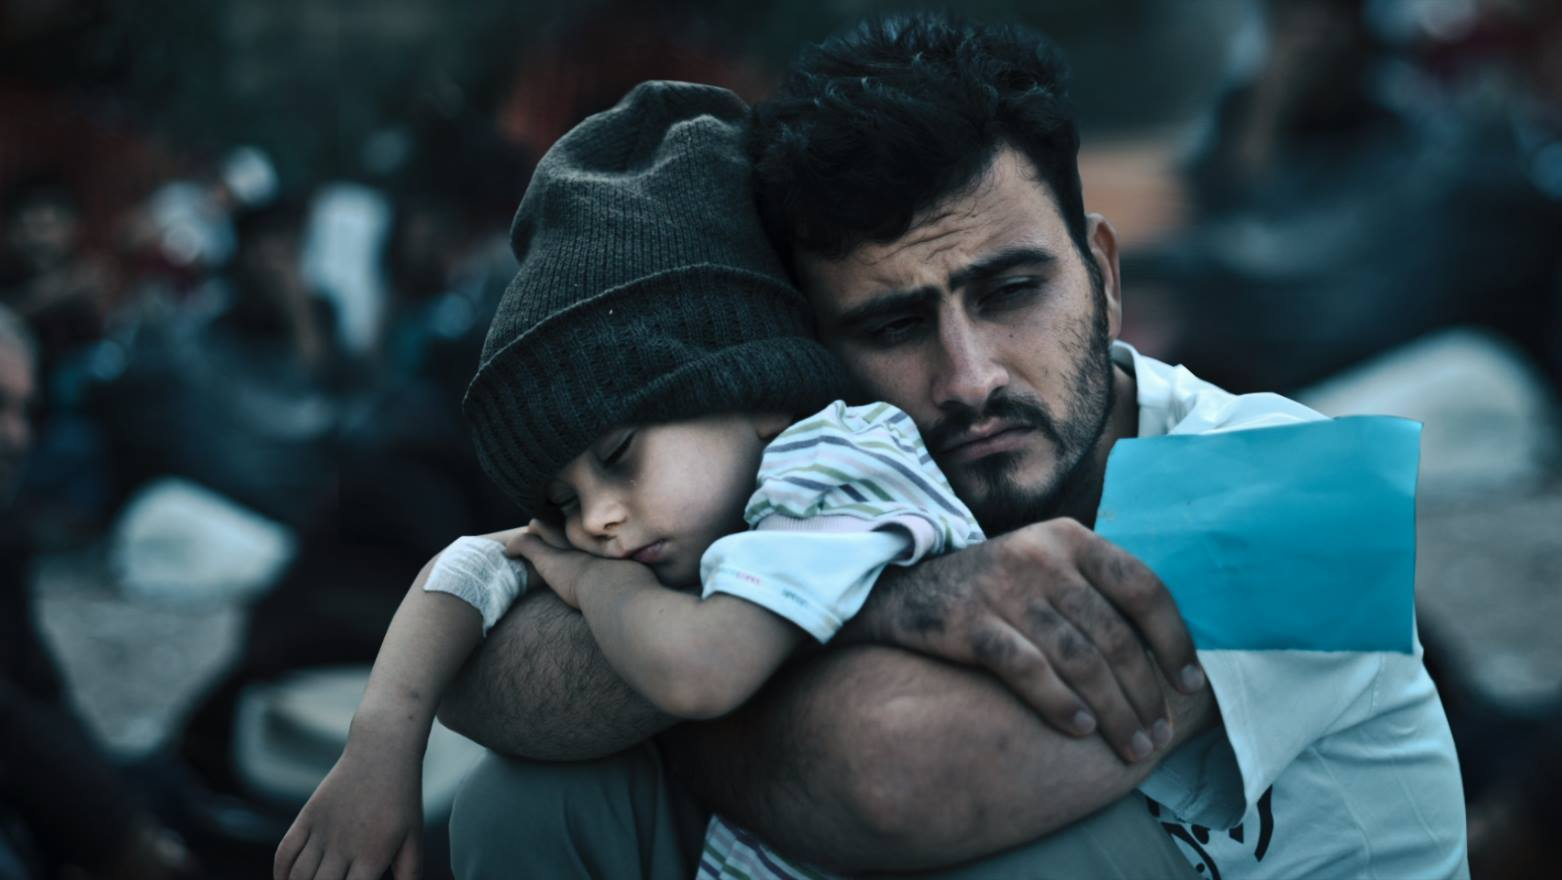 The physical and spiritual dangers of an expanding refugee crisis